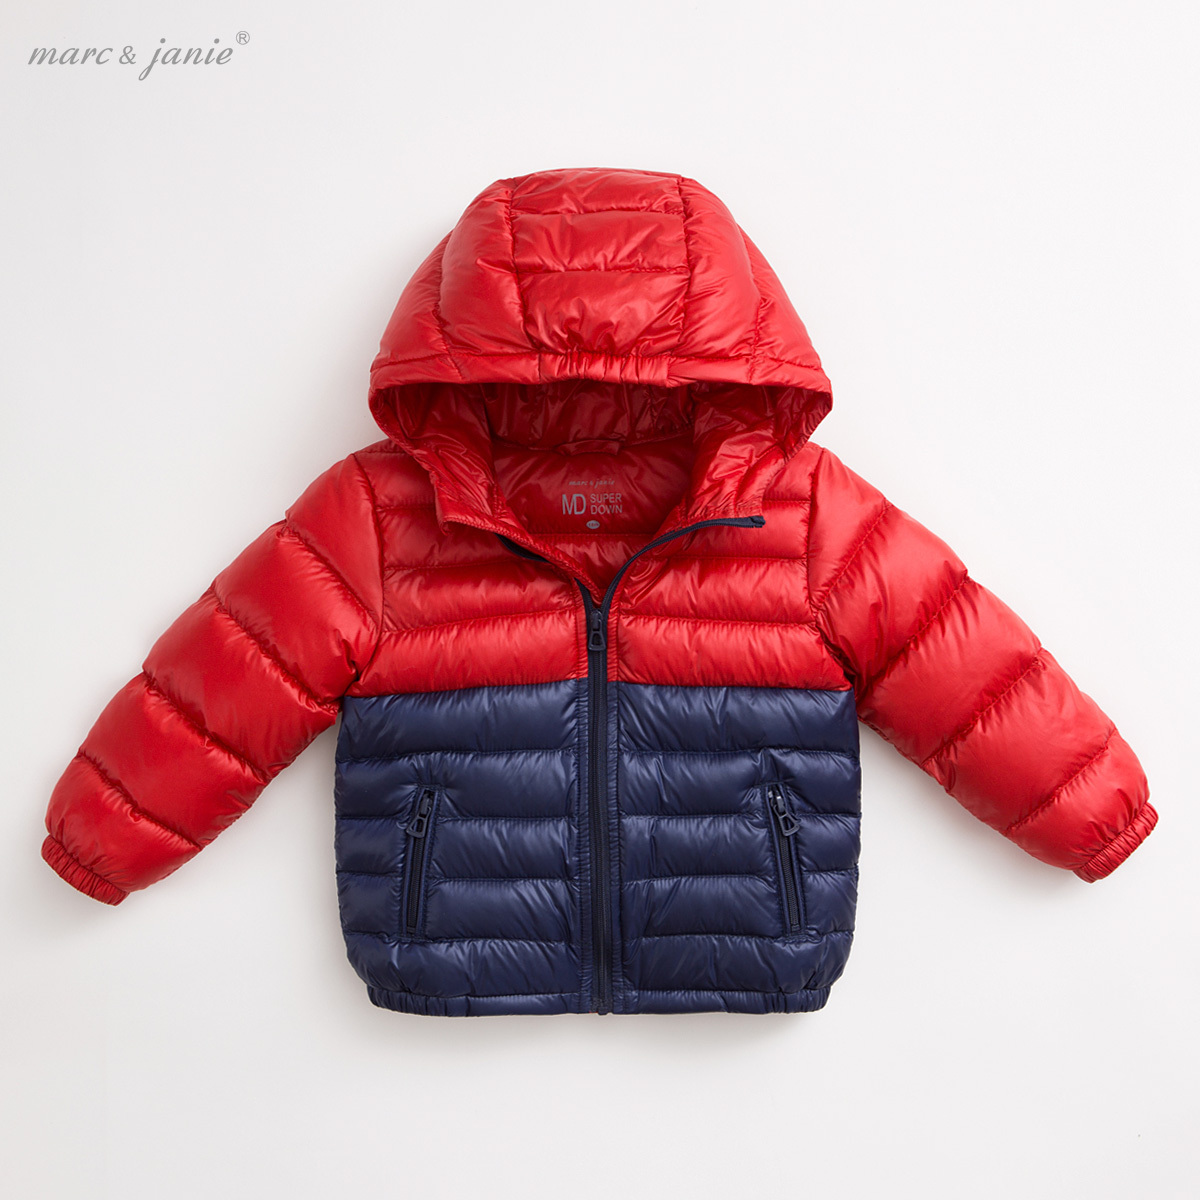 0-1-2 years old baby down service boy children baby wear down jacket winter infant snowsuit childrens winter jackets